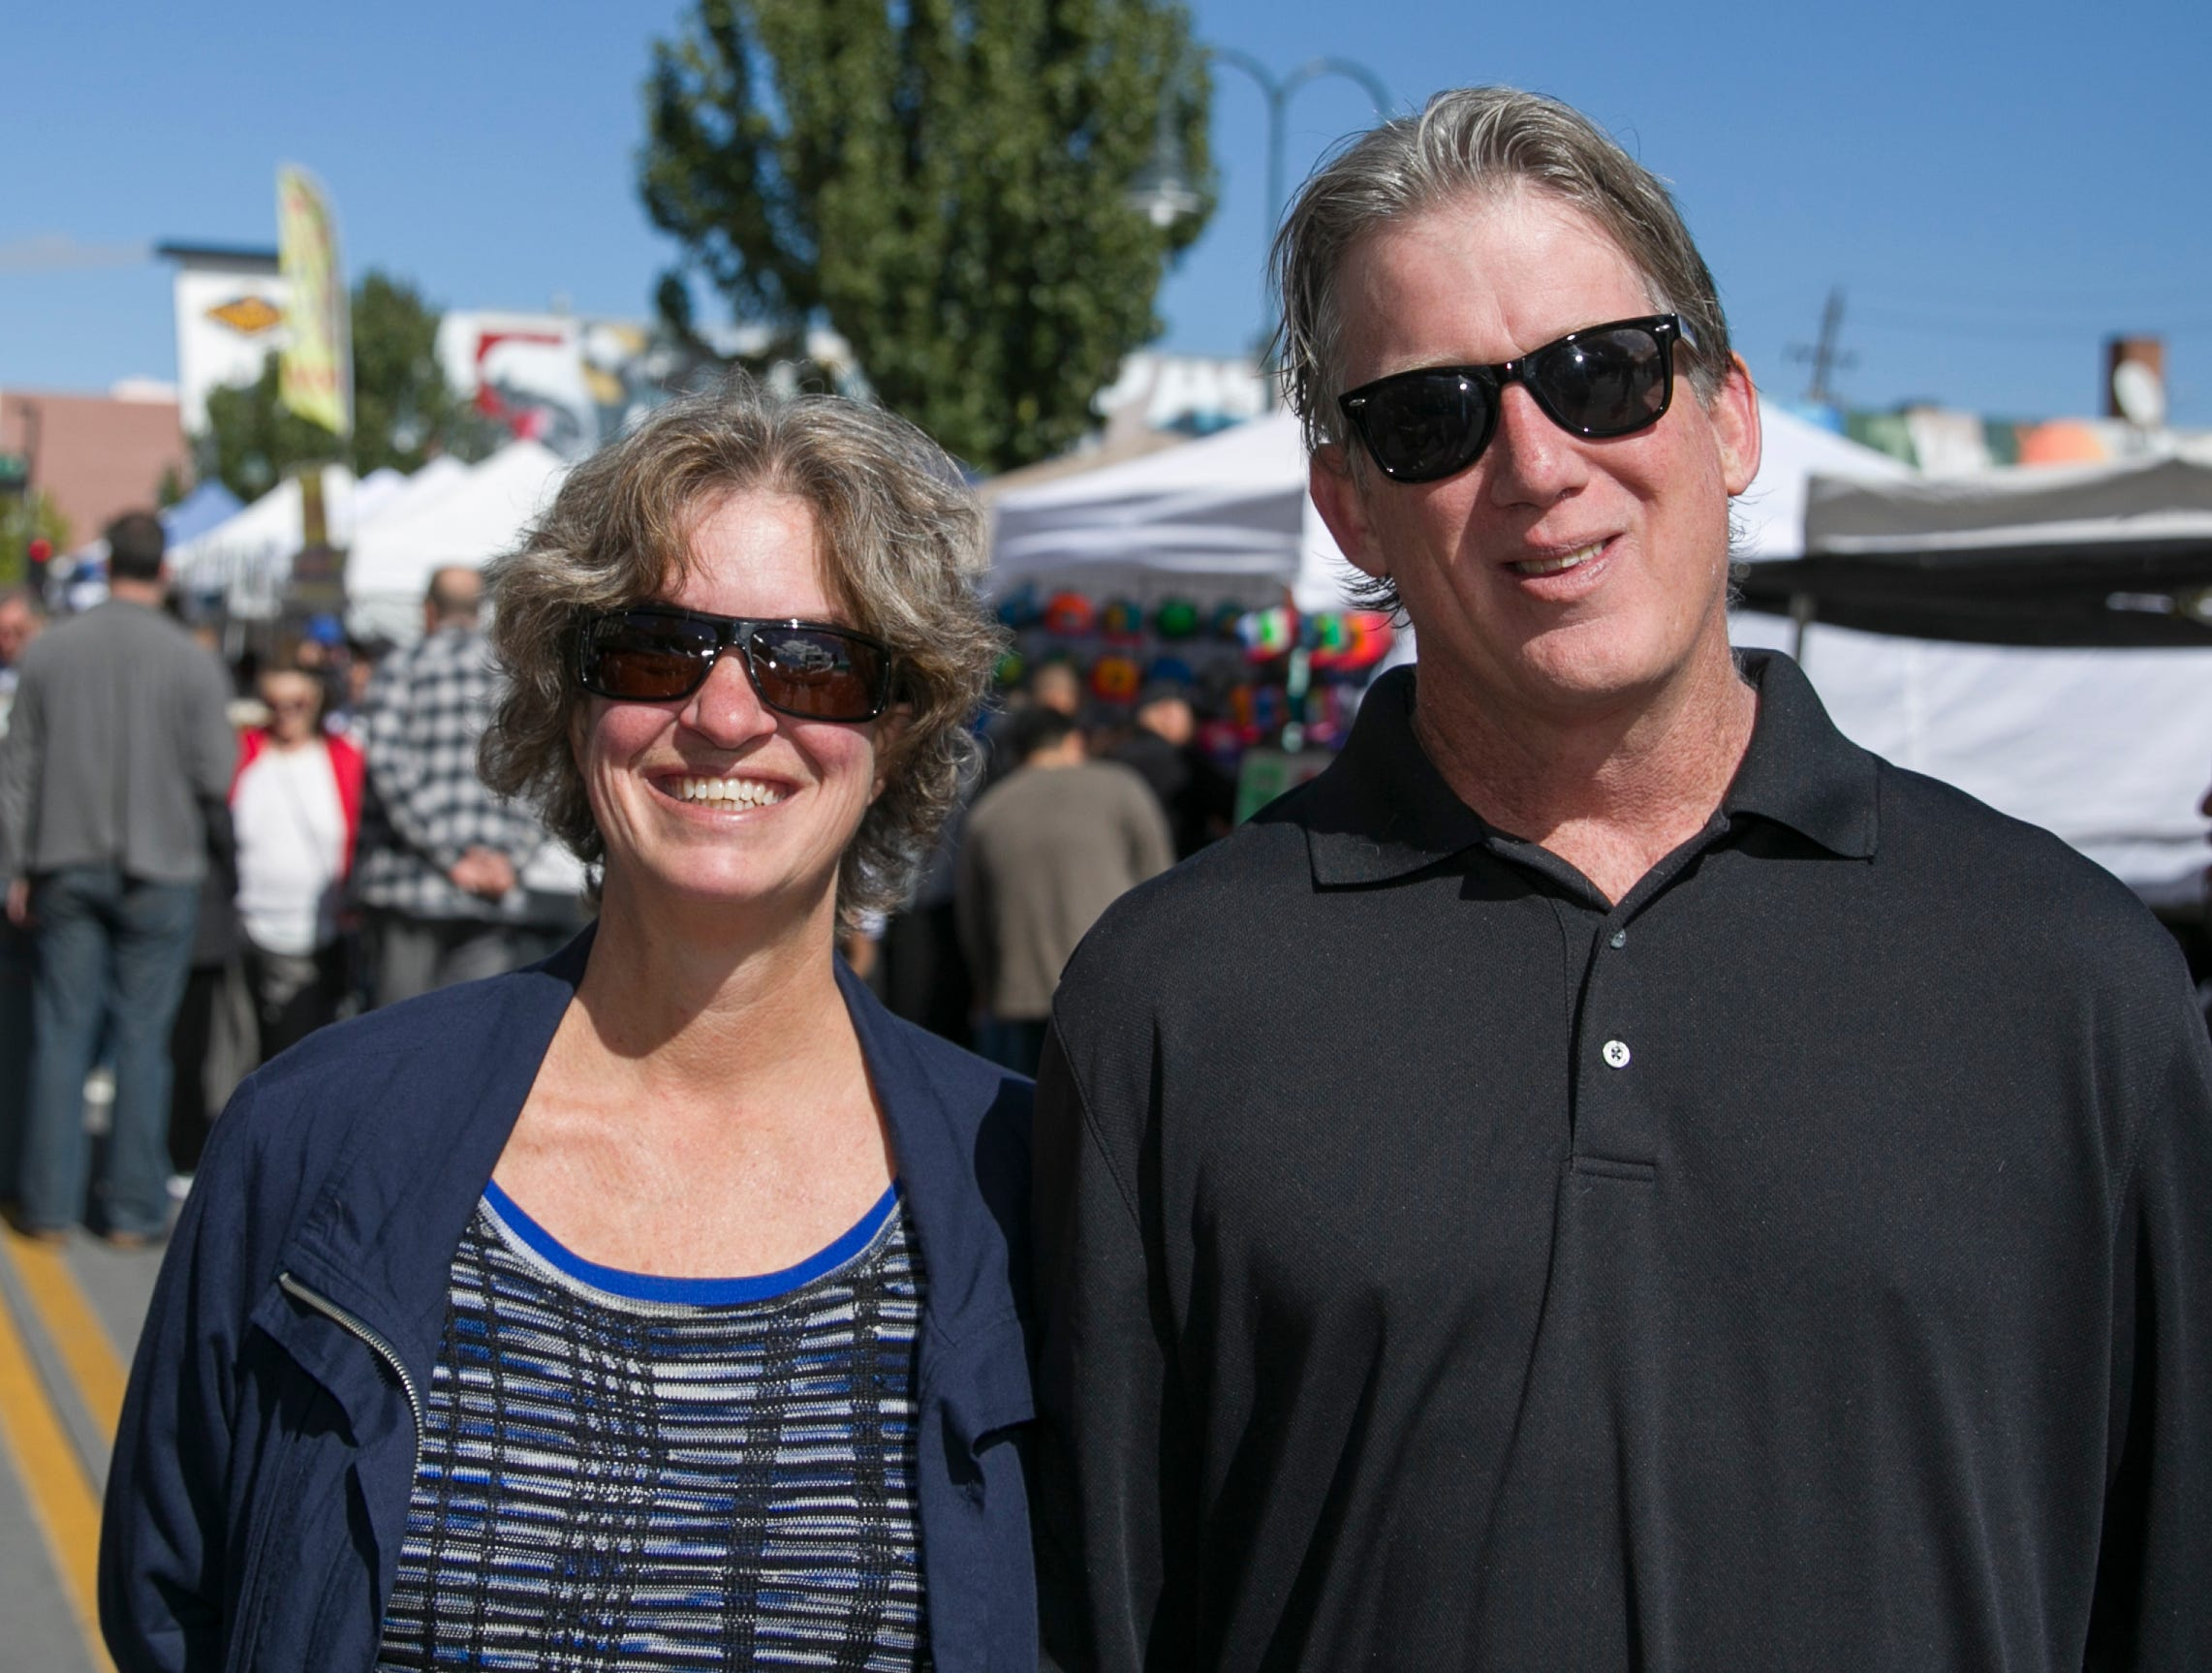 Debbi and Patrick during the Italian Festival held in downtown Reno outside of the Eldorado Hotel and Casino on Sunday afternoon, October 7, 2018.